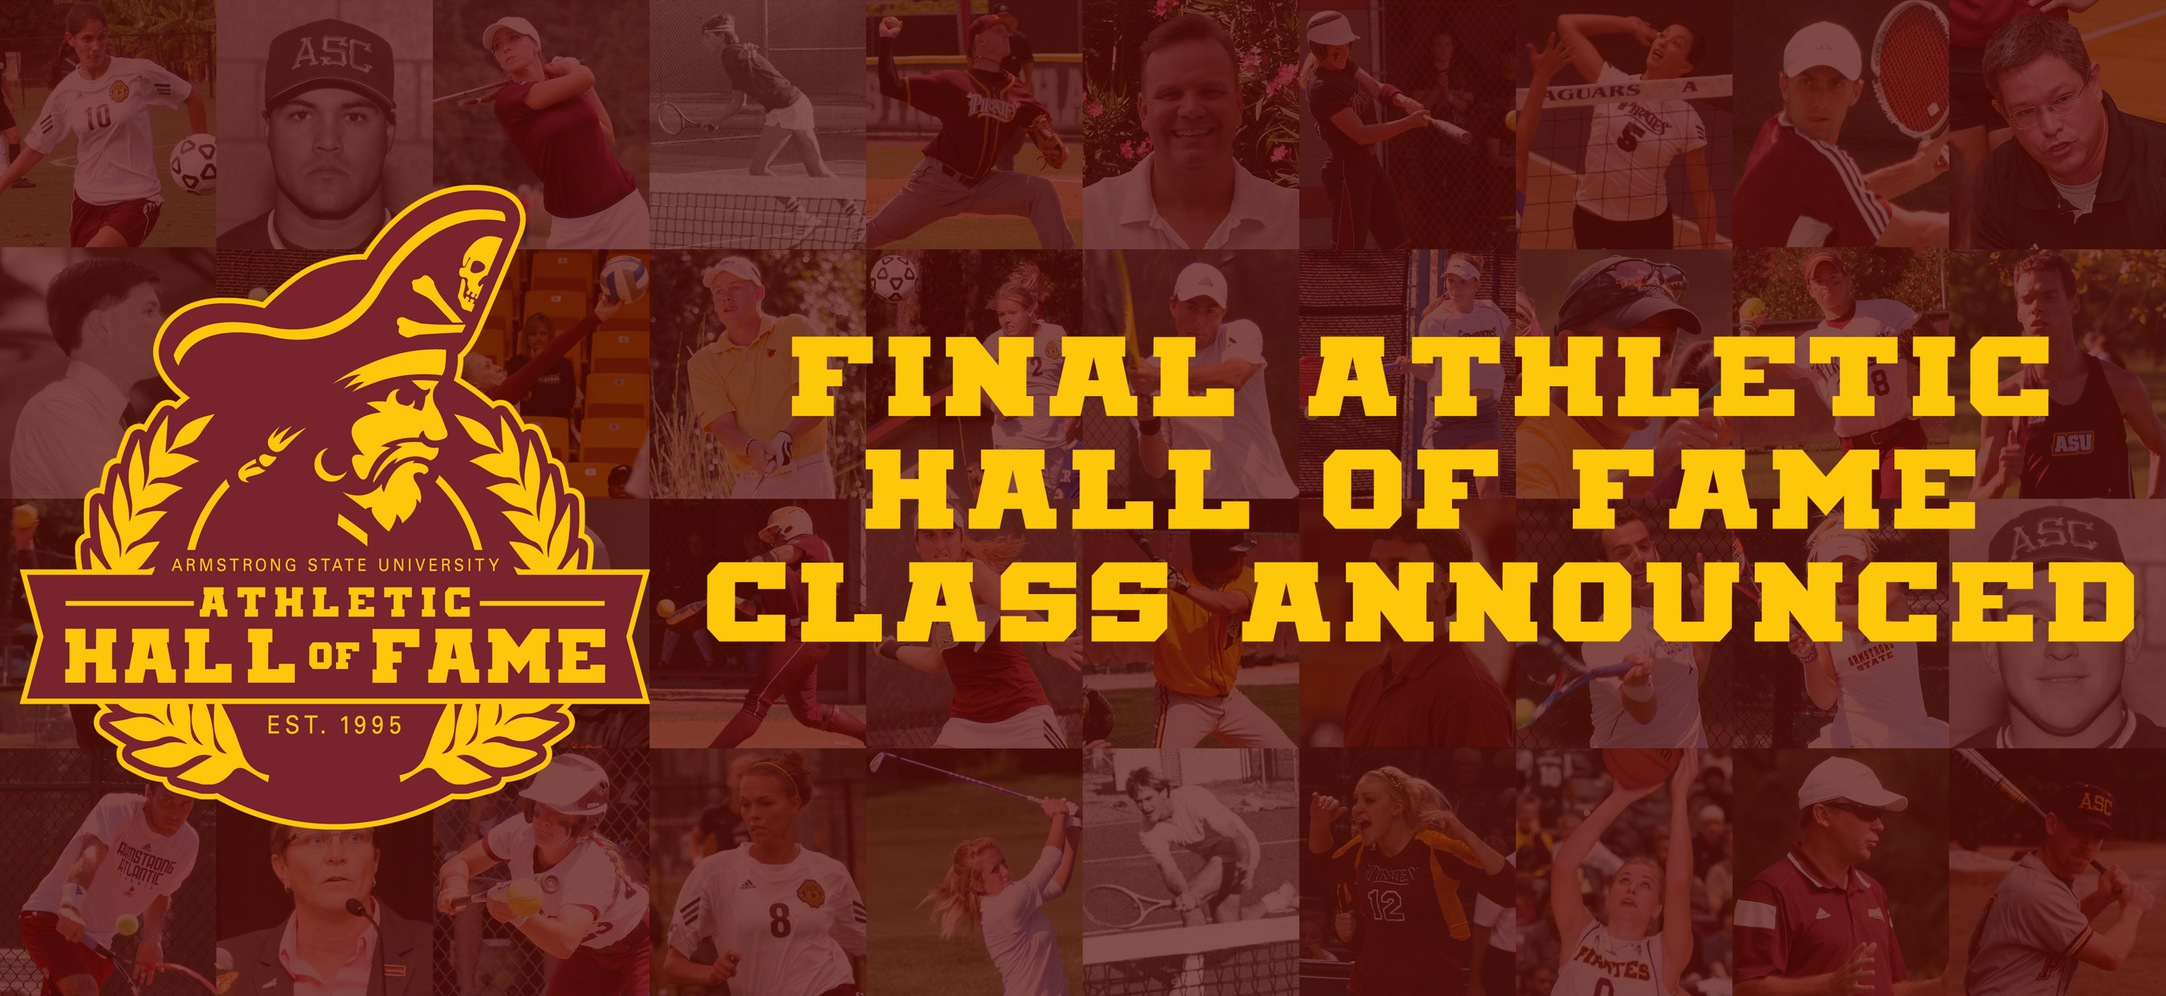 Armstrong State University Announces Final Athletic Hall of Fame Class